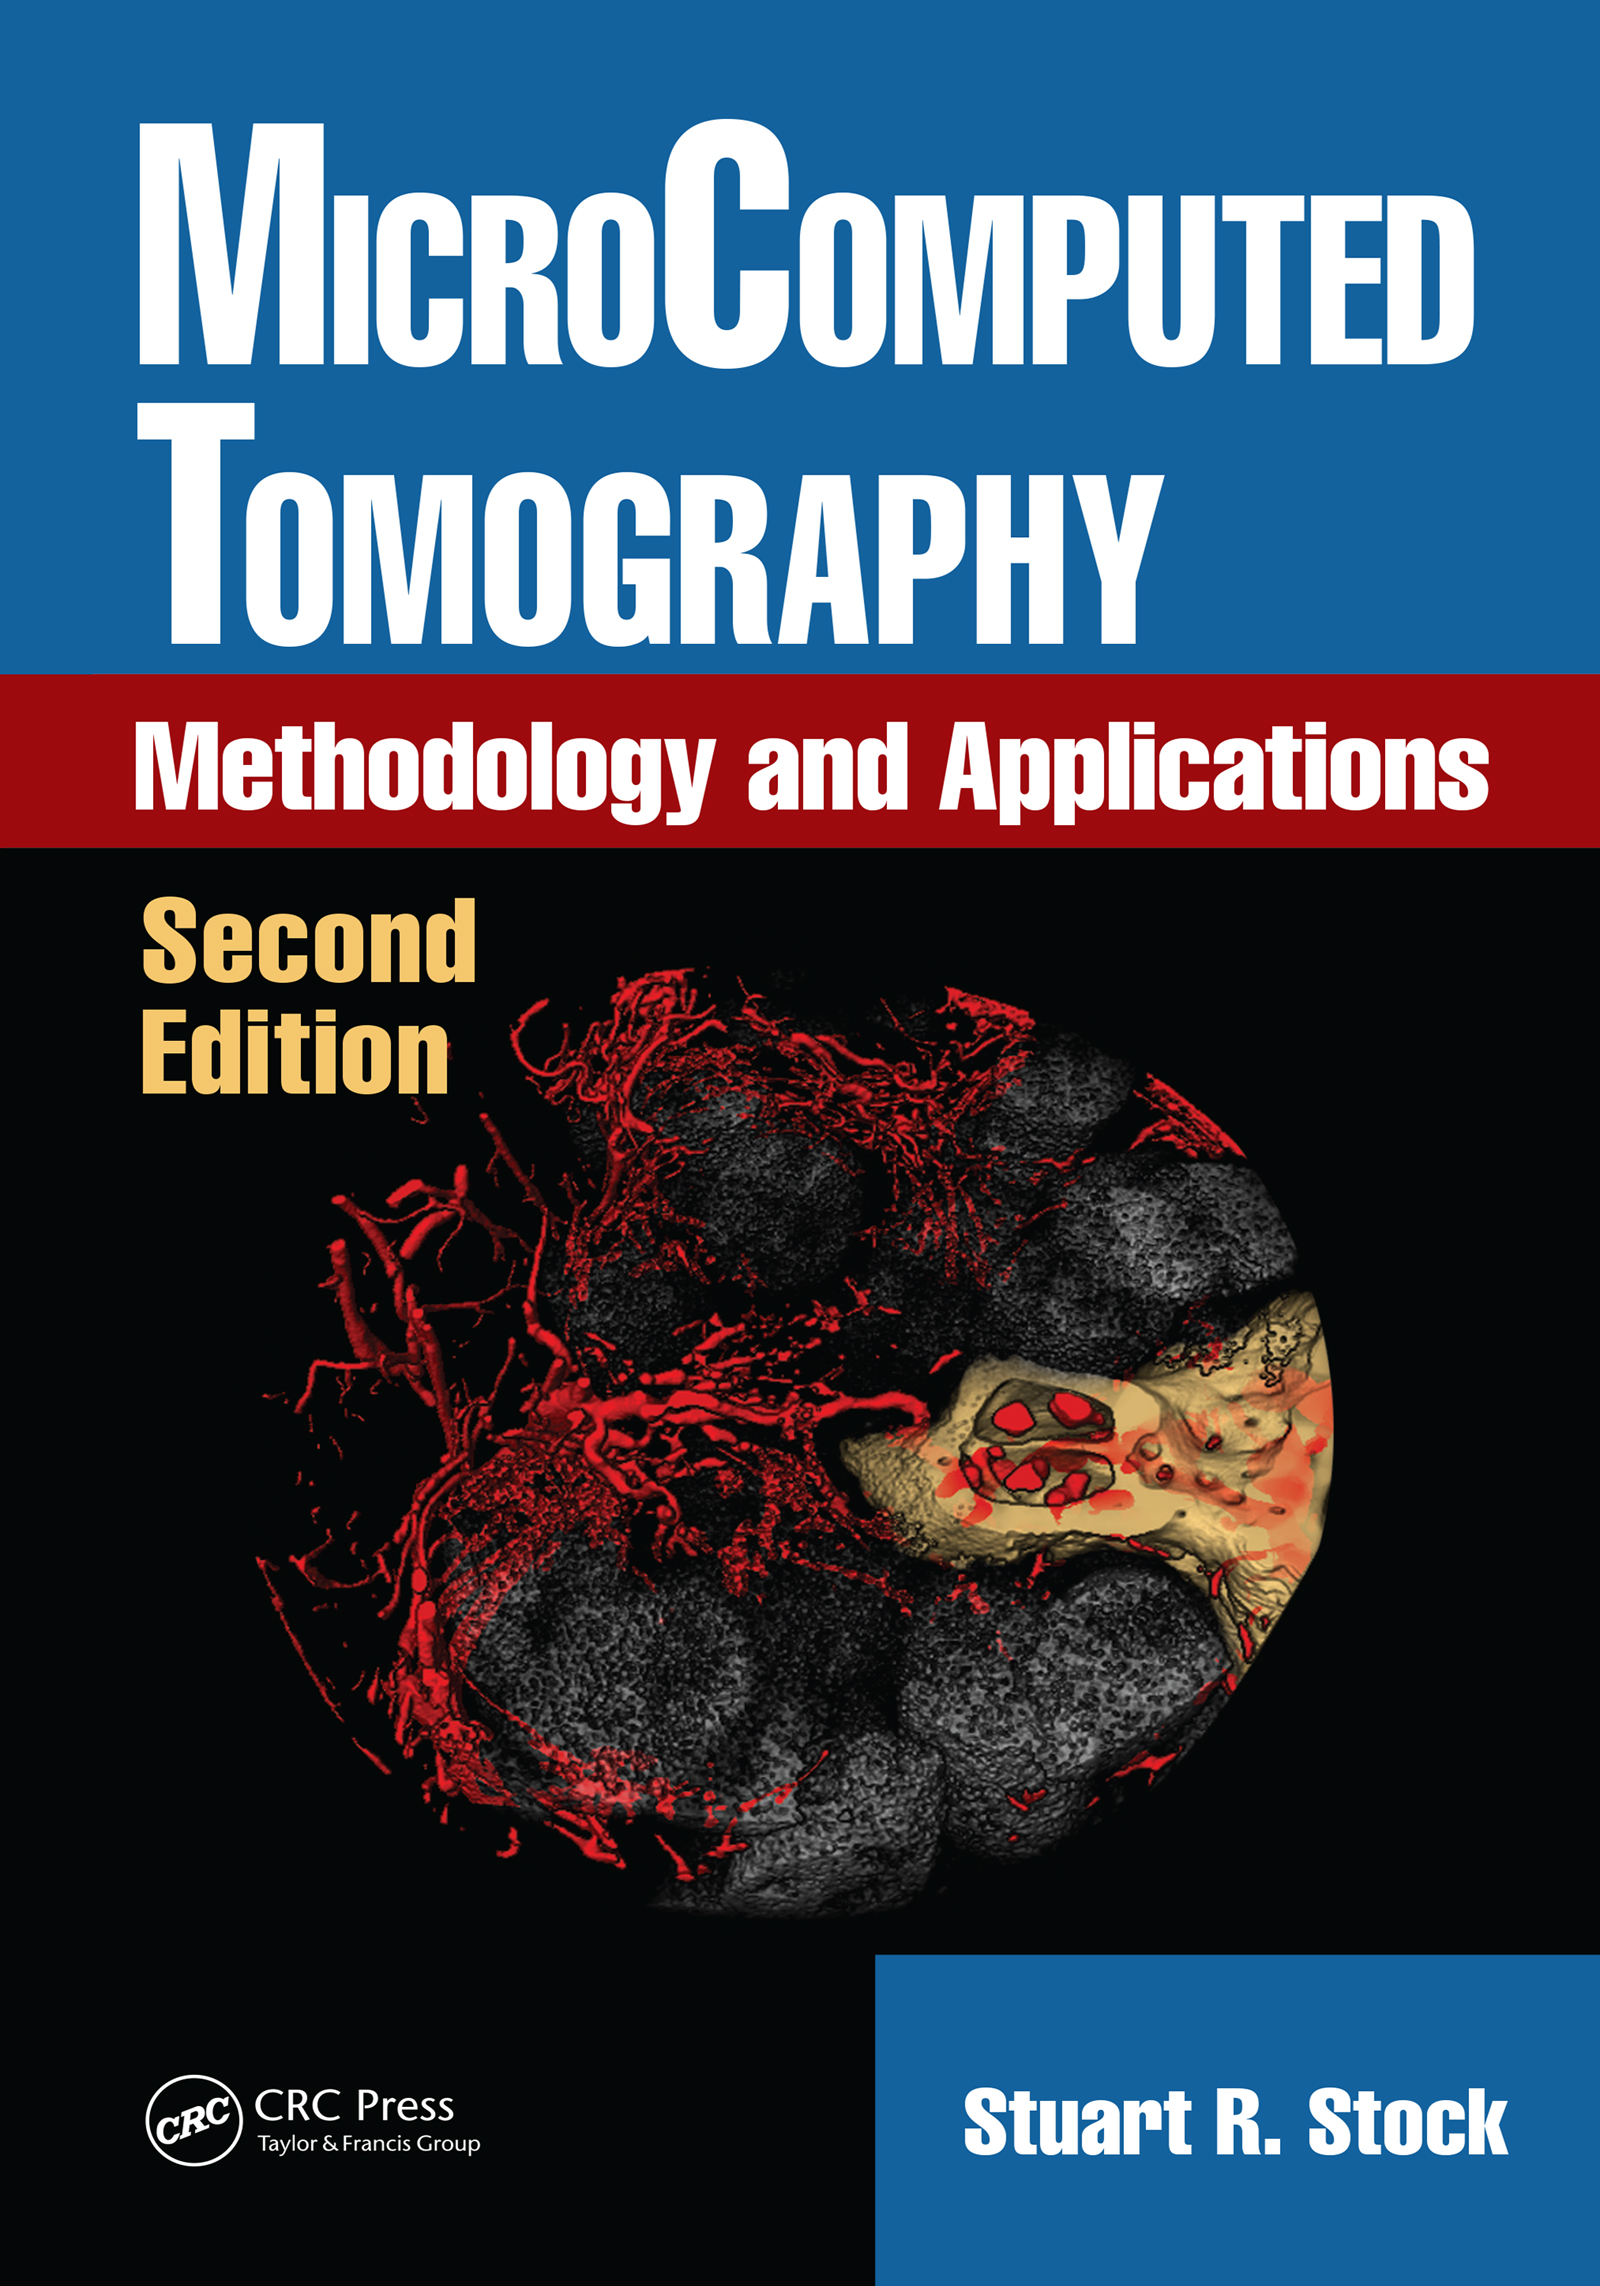 MicroComputed Tomography: Methodology and Applications, Second Edition book cover